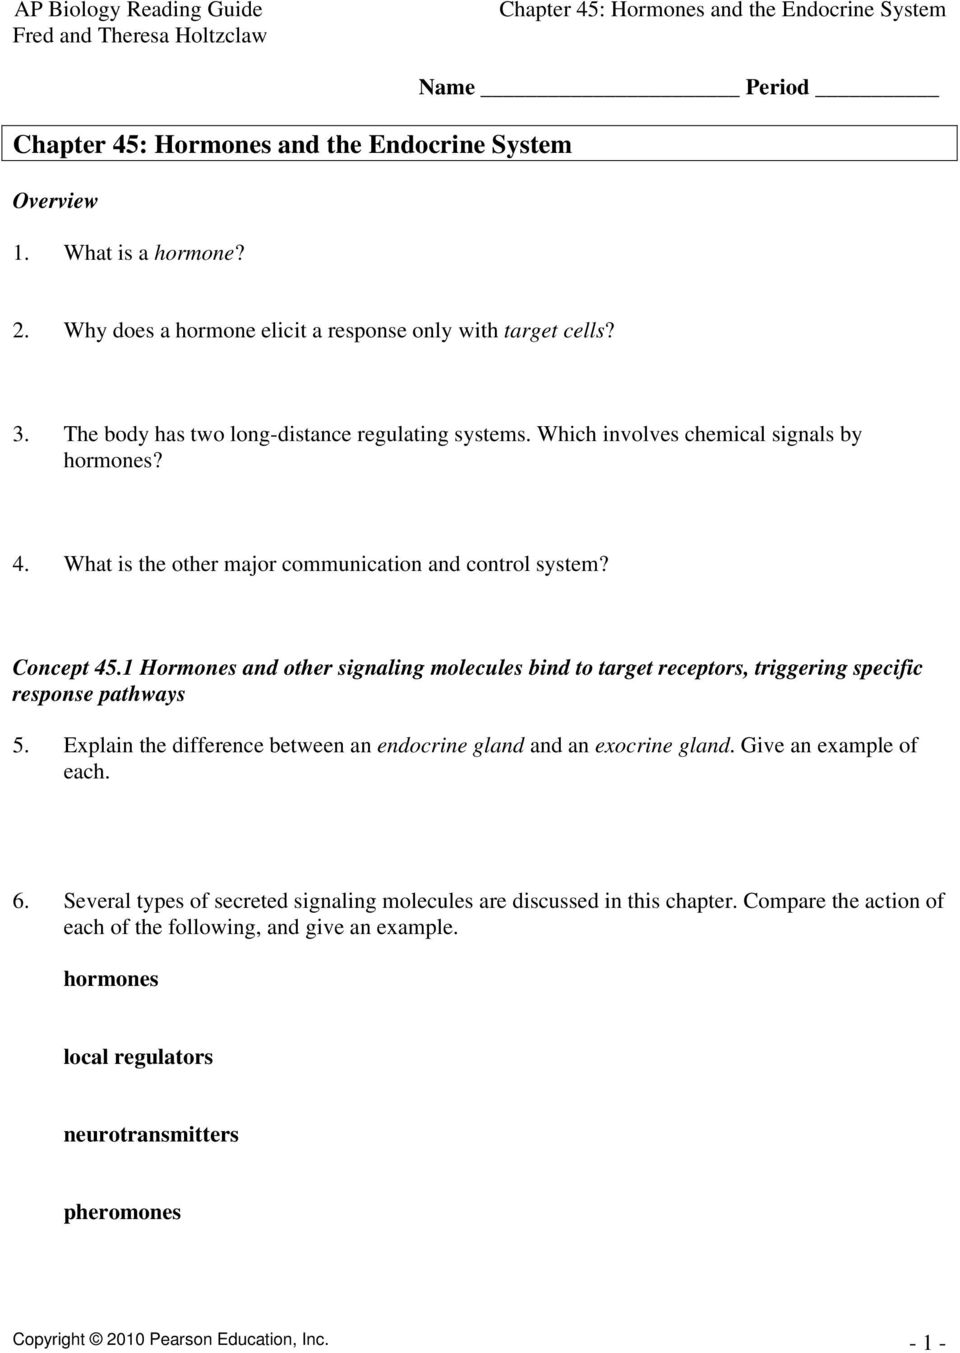 Chapter 45 Hormones And The Endocrine System Pdf